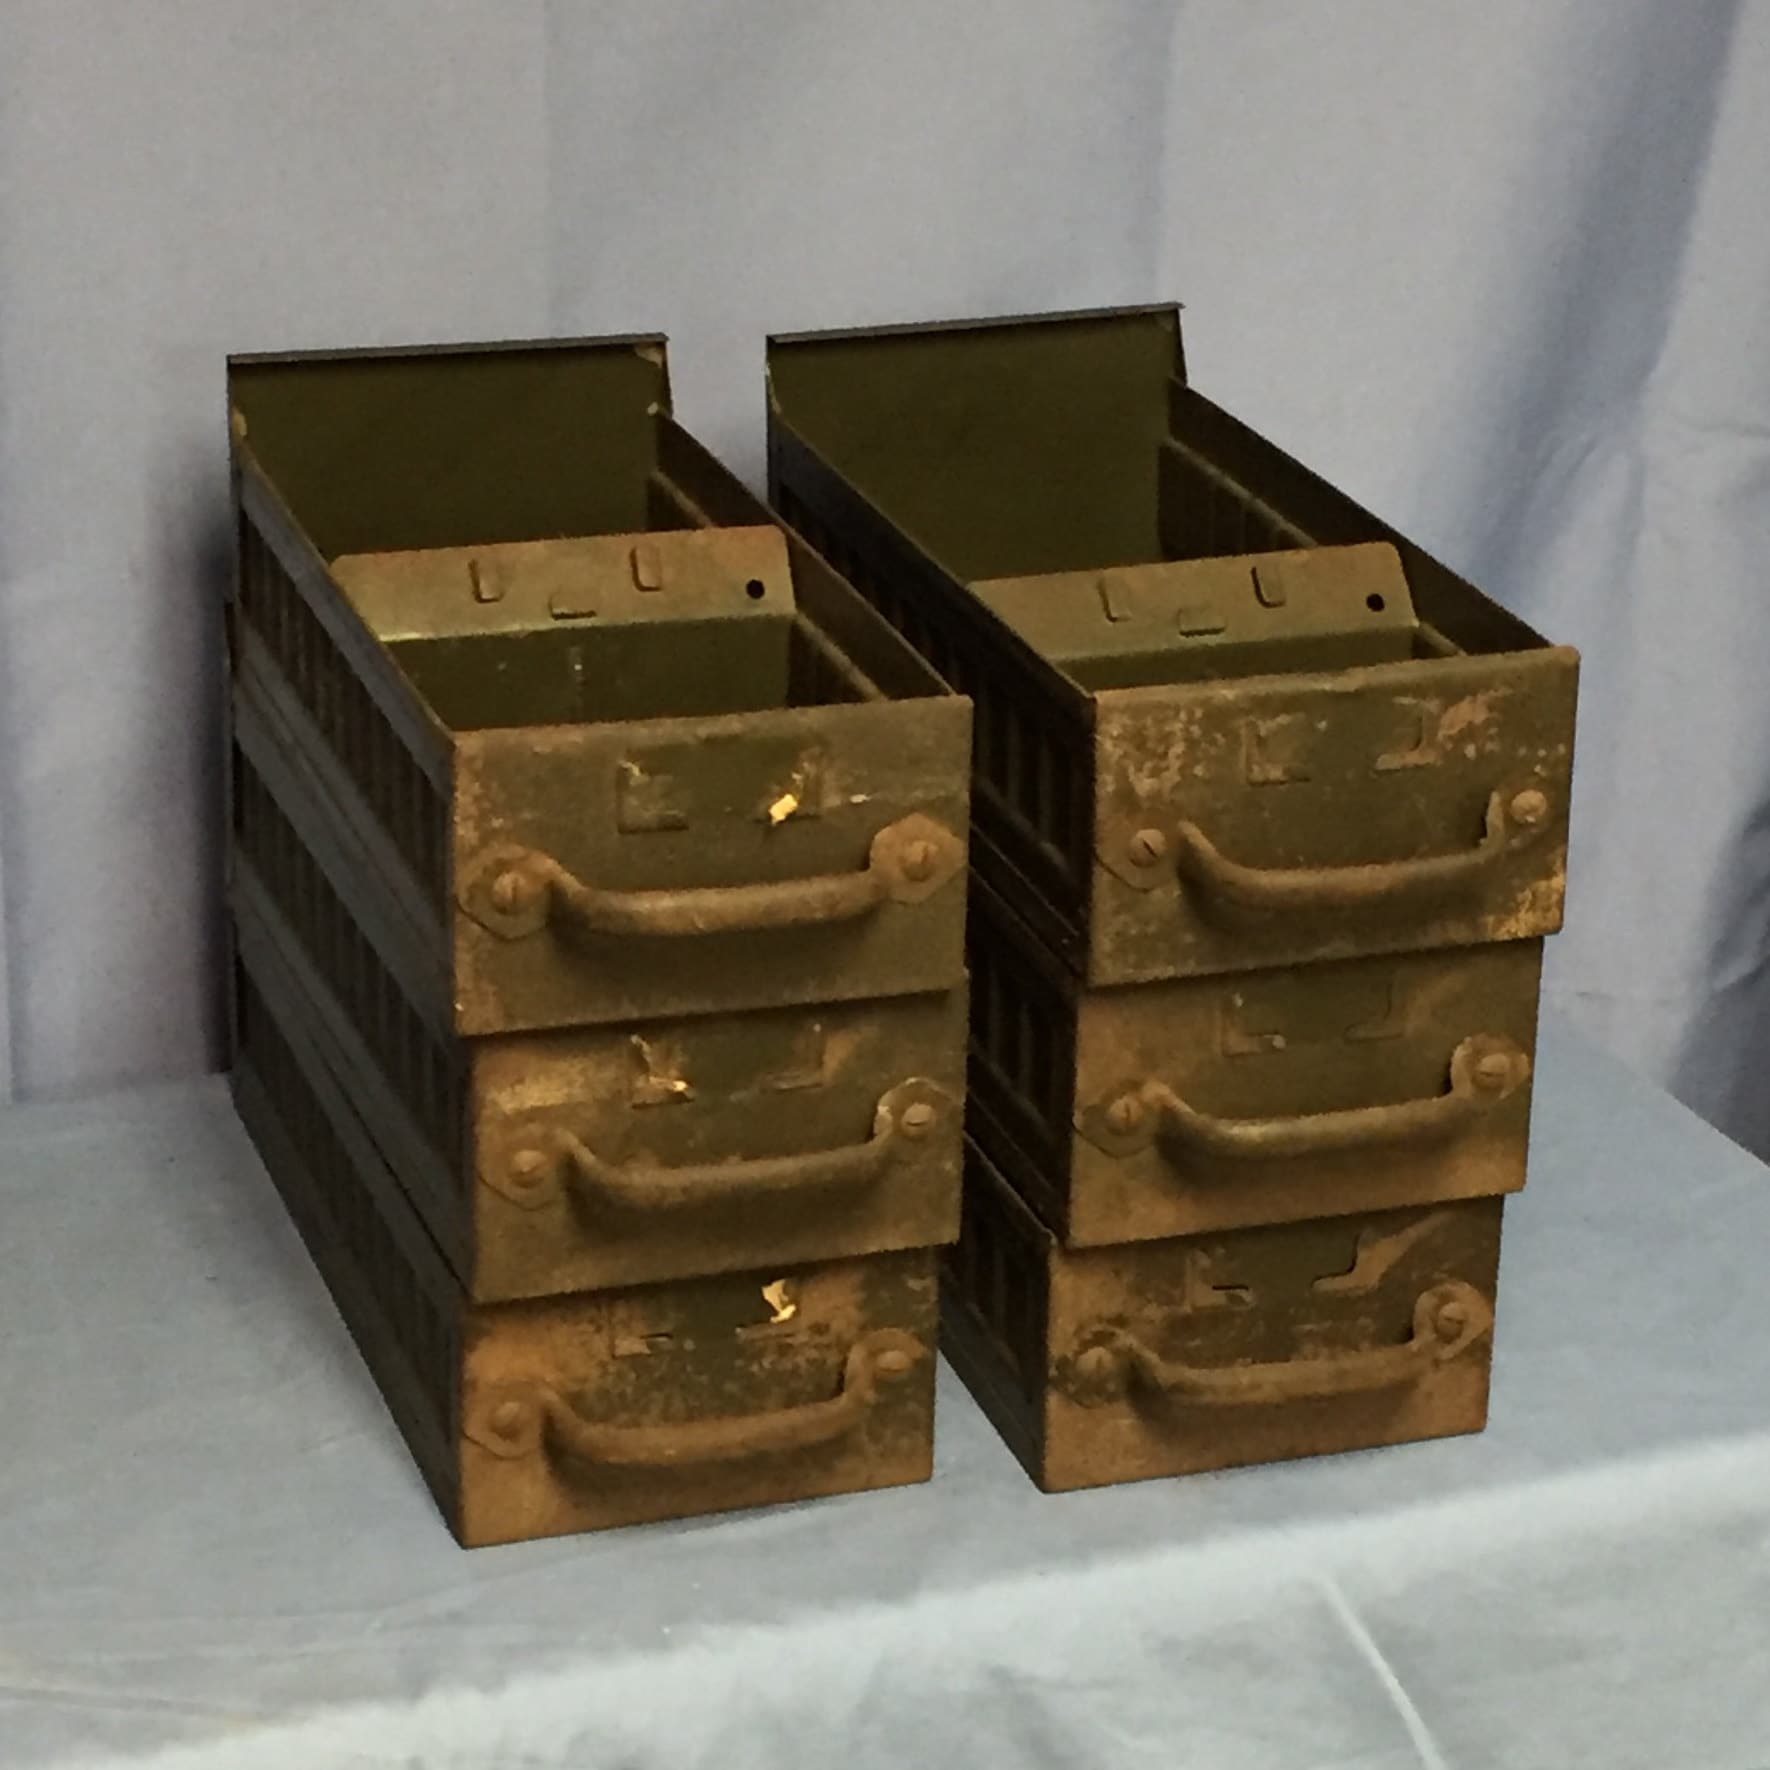 RESERVED For Ty 7 Vintage Industrial Steel Parts Drawers, Old Green EQUIPTO Hardware  Drawers, Cubbys, Hardware Storage,